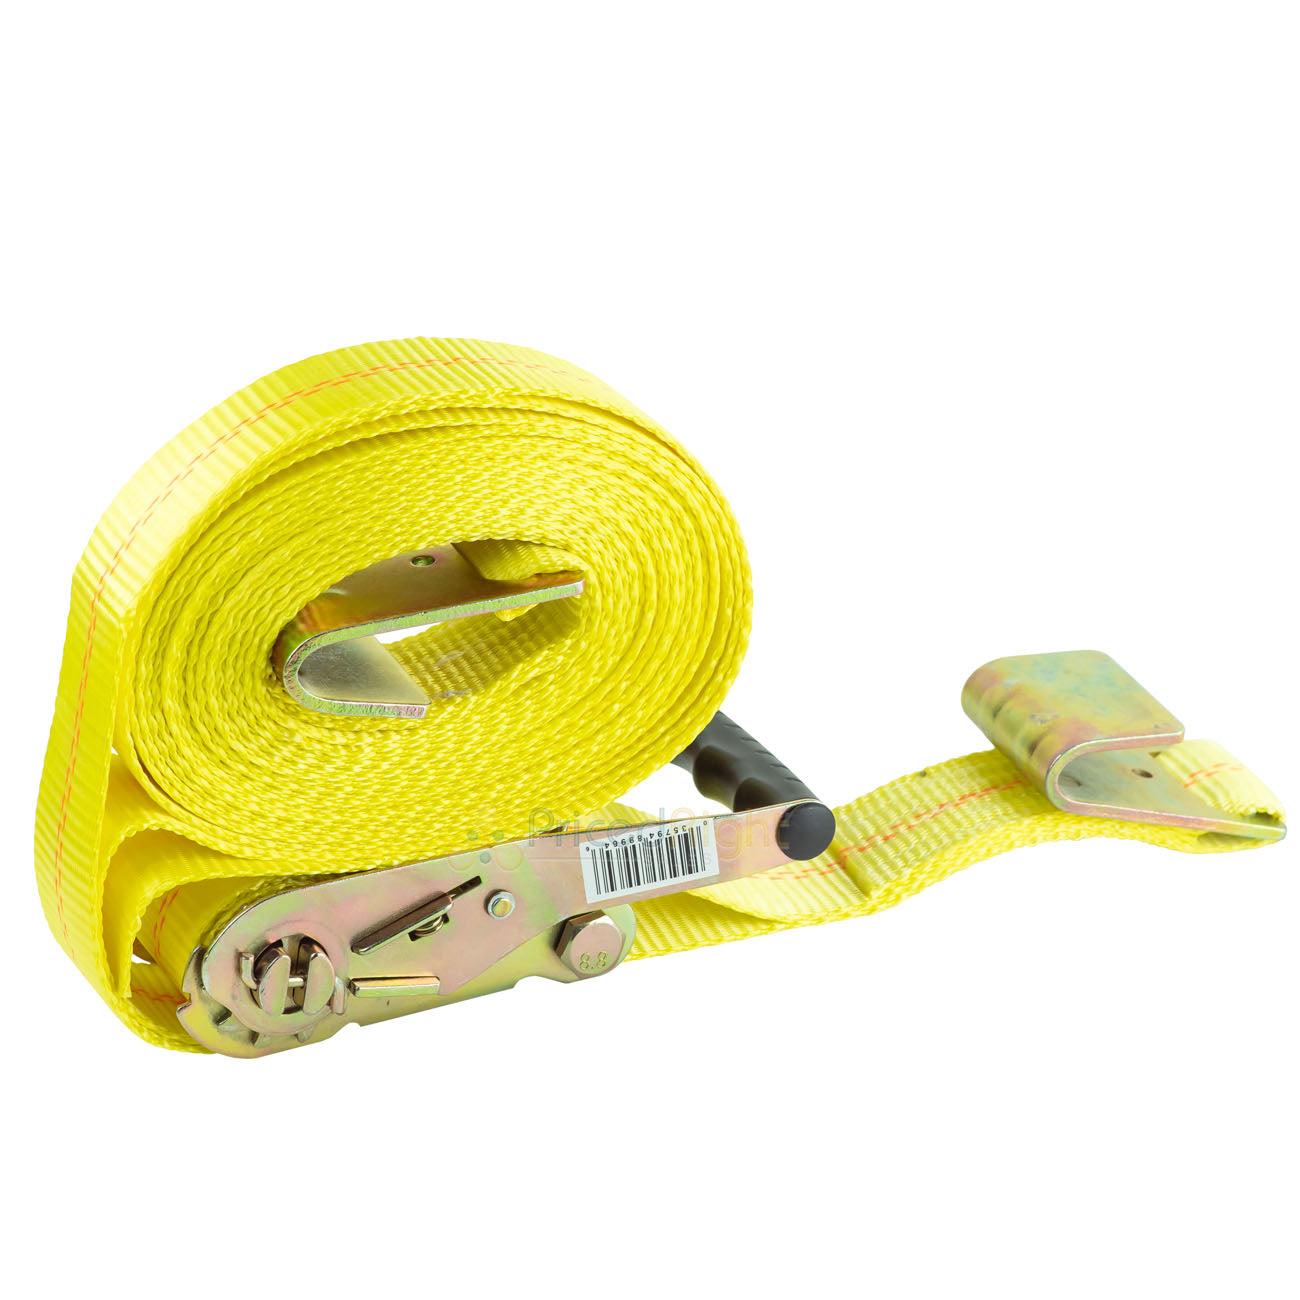 "Ratchet Tie Down Nylon 27 Ft Heavy Duty 2"" Strap 10000 Lbs Flat Hook Dot/Chp R"